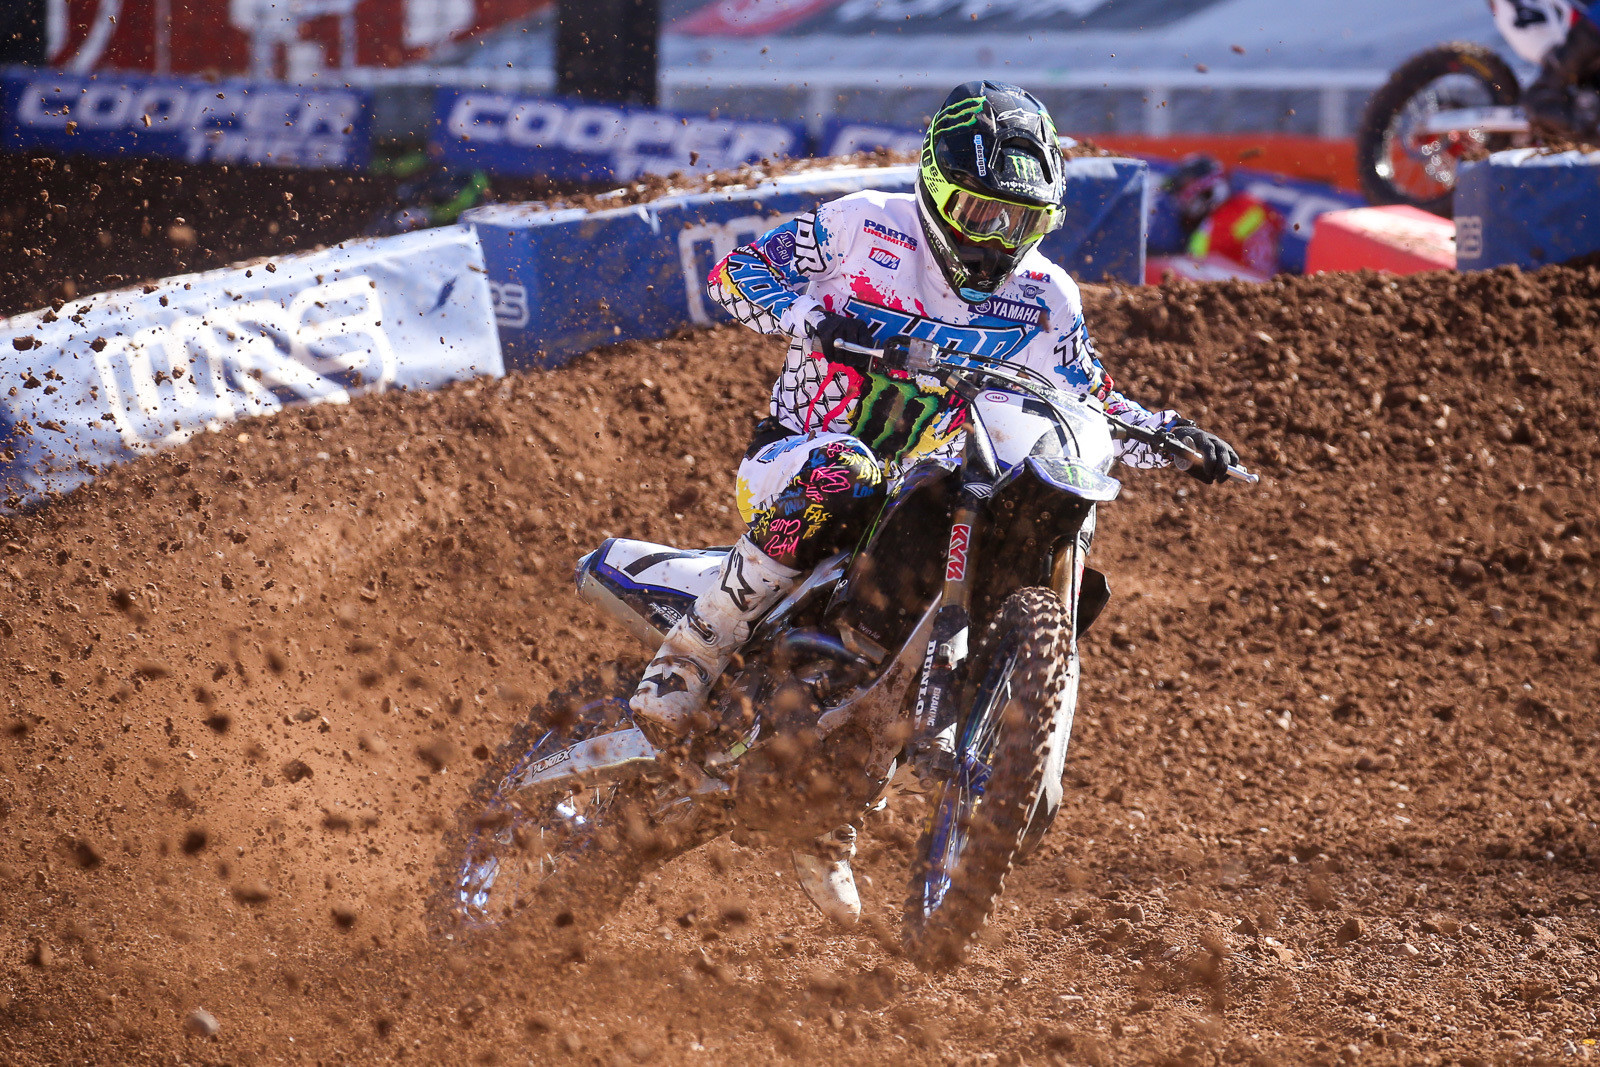 Aaron Plessinger also had work to do in the main, jumping up seven spots to an eventual ninth-place finish.